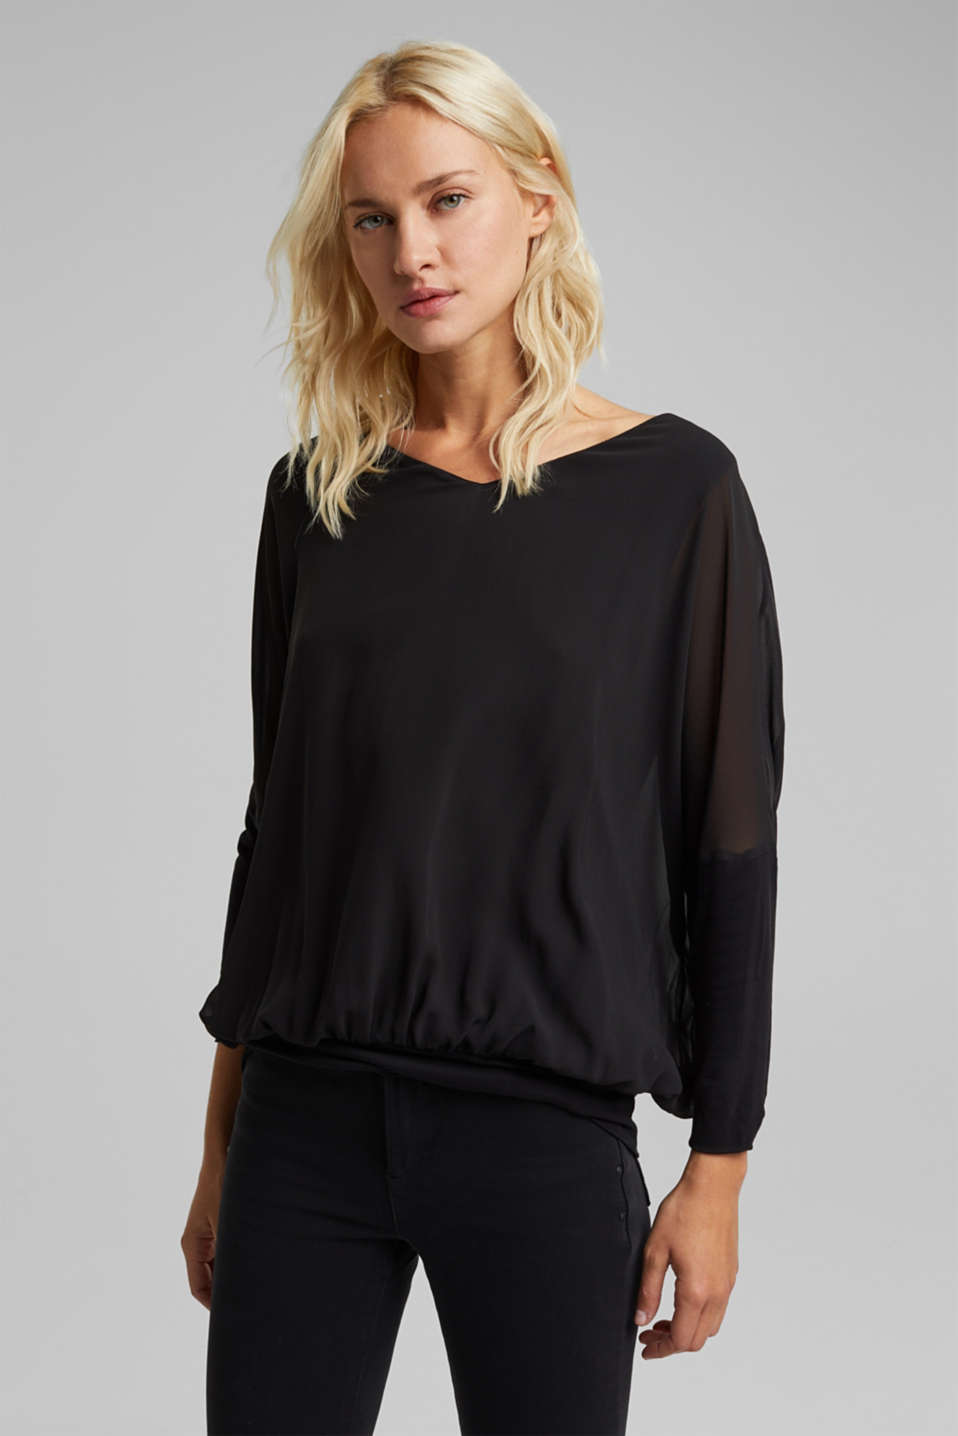 Esprit - Chiffon blouse with a jersey border